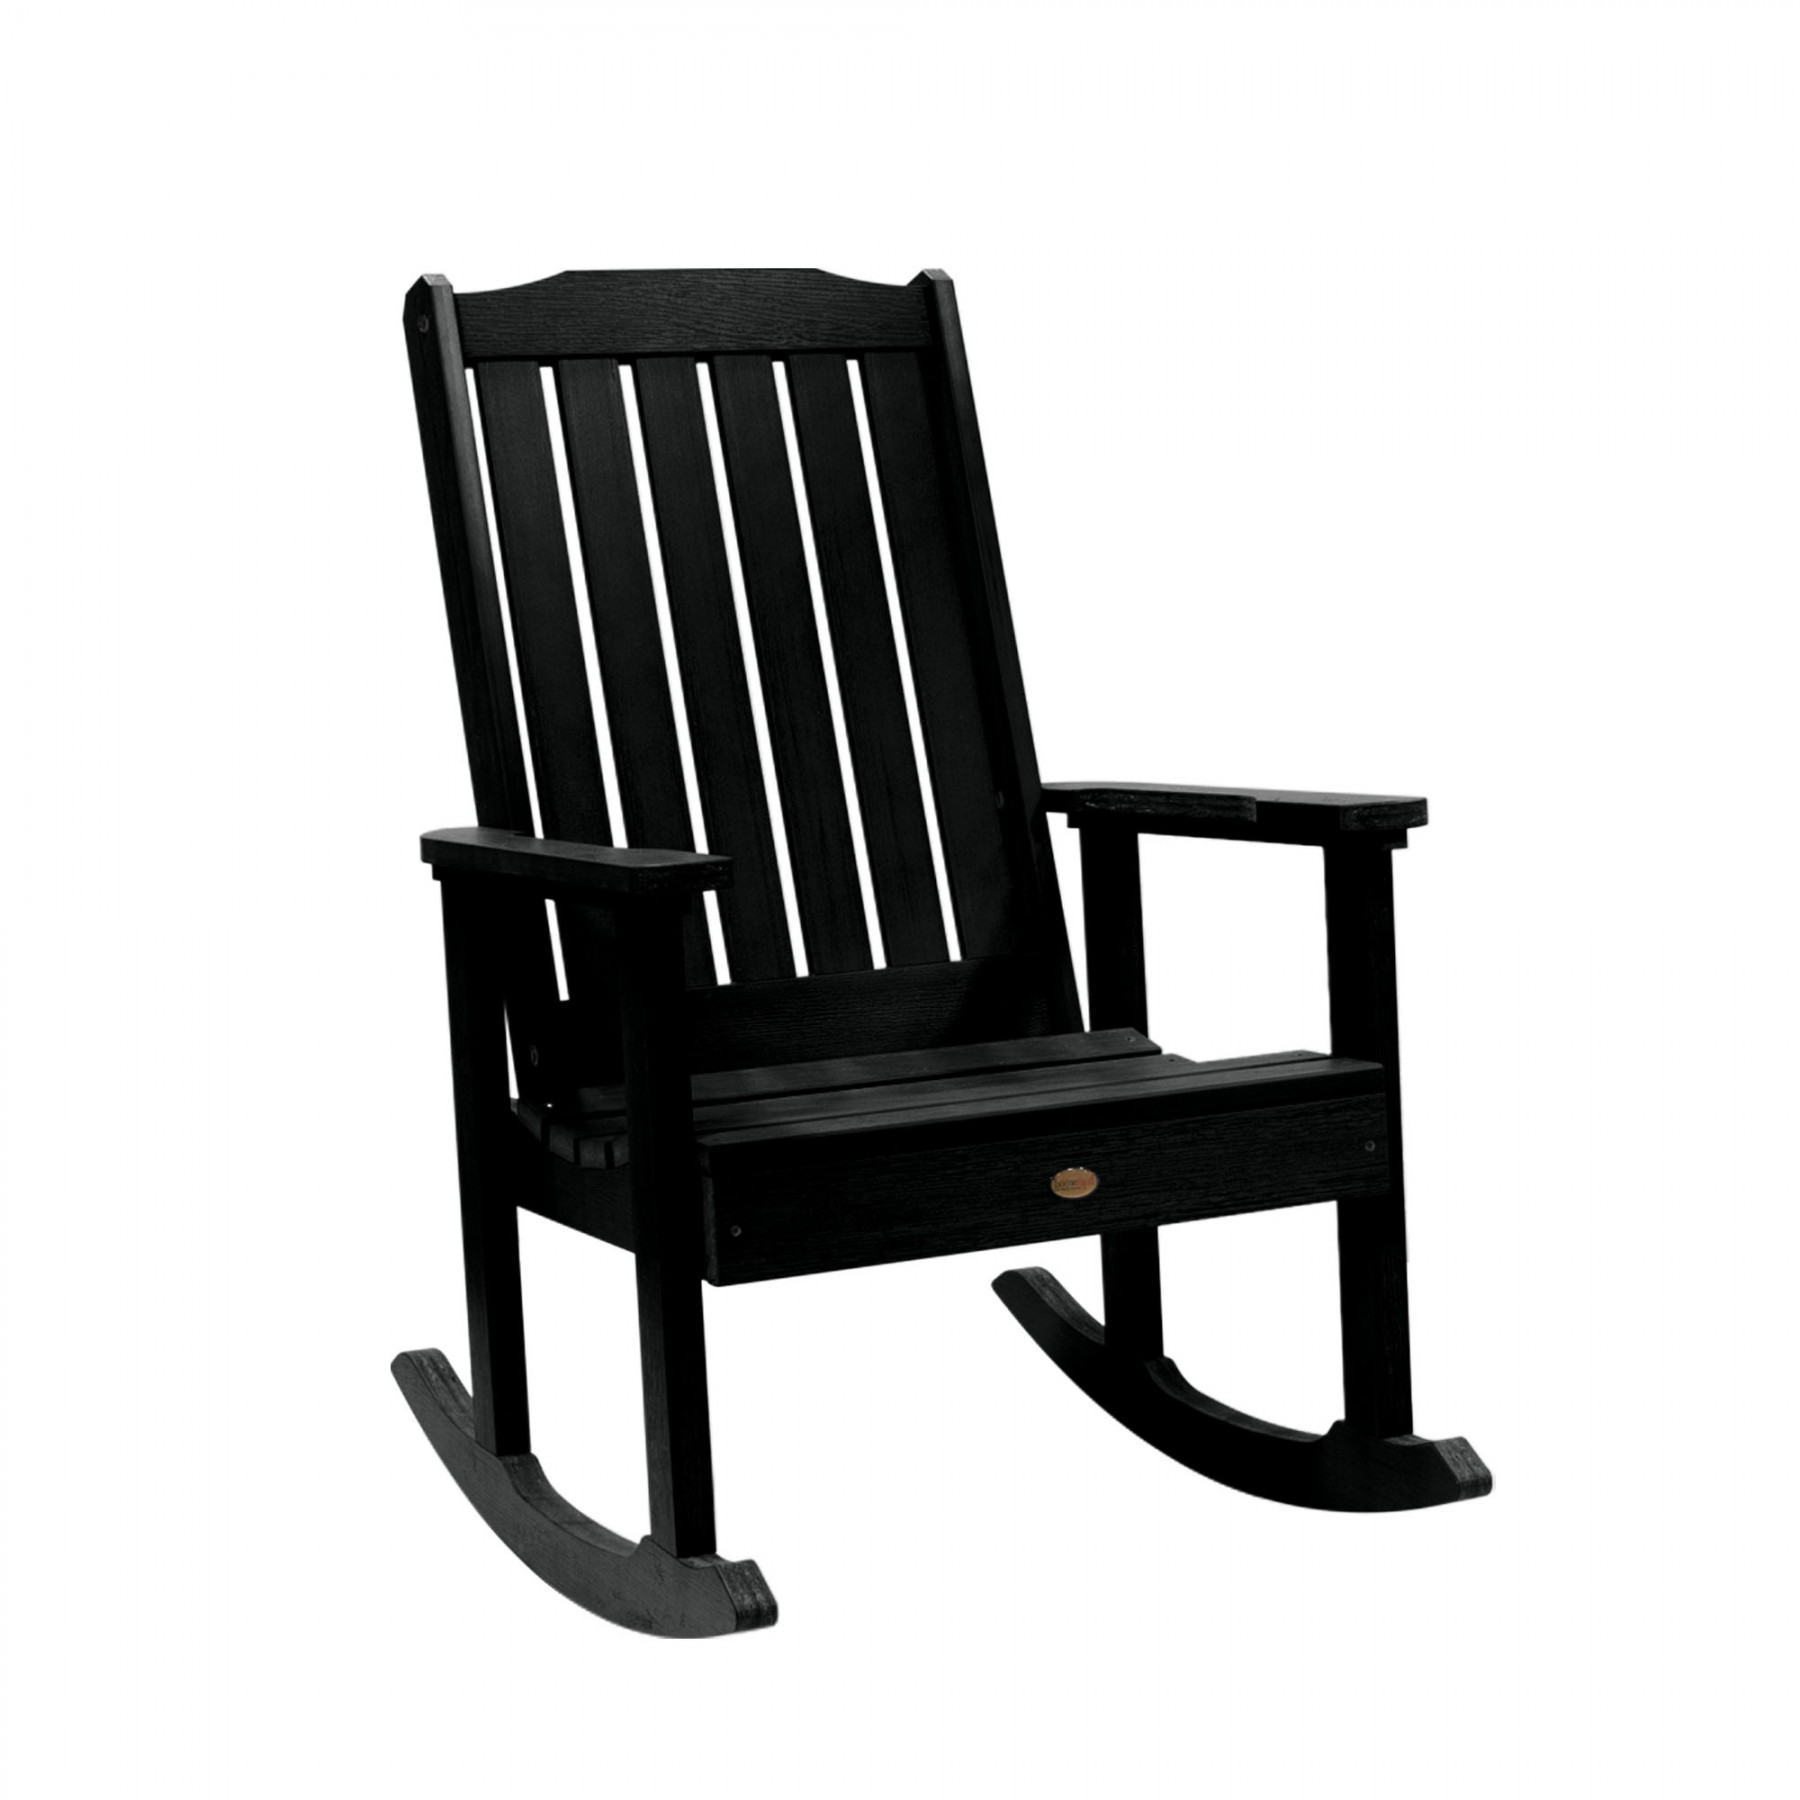 outdoor rocking chair set highwood usa lehigh chairs with adirondack side table tures patio swing dress storage ikea platform rocker cushions deck swings chords kids furniture and